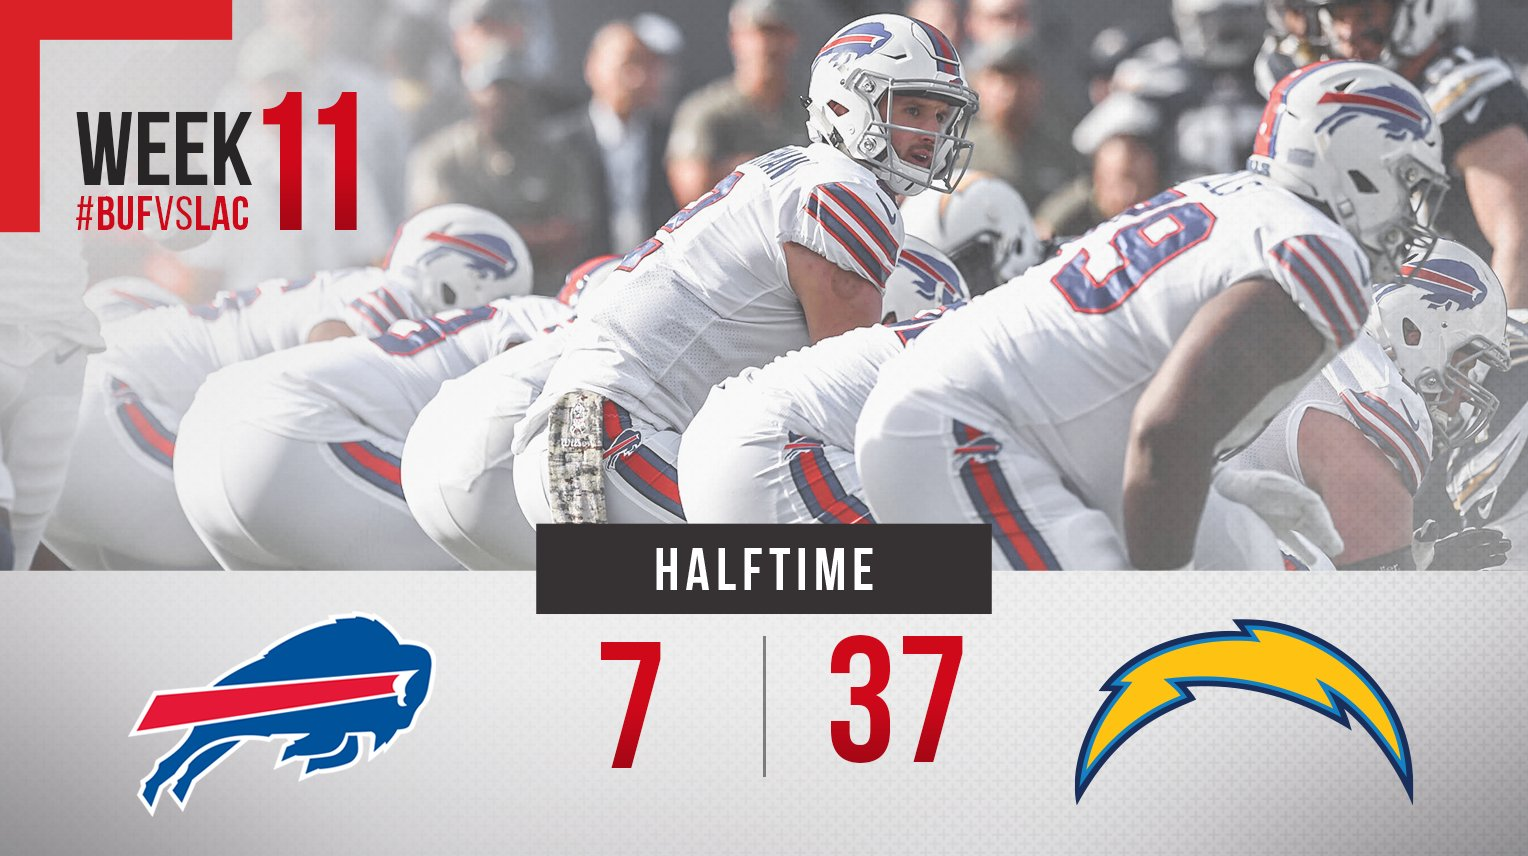 Halftime out west. #BUFvsLAC   Highlights: https://t.co/egVypGtD3V https://t.co/PDd4MUVbXQ